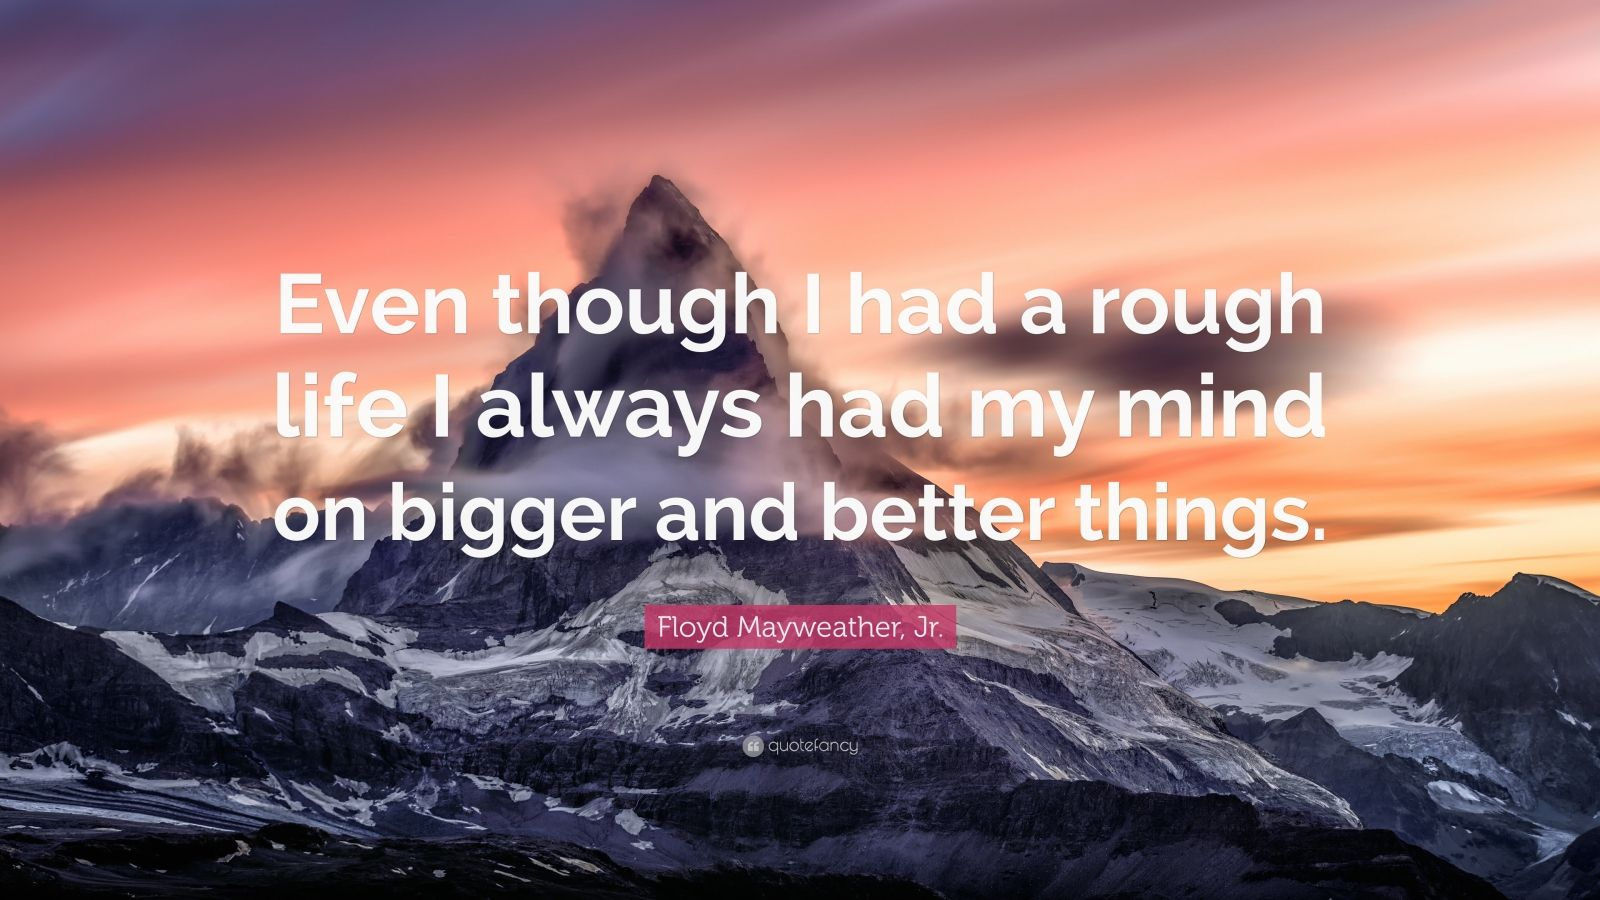 """Floyd Mayweather, Jr. Quote: """"Even though I had a rough life I always had my mind on bigger and better things."""""""